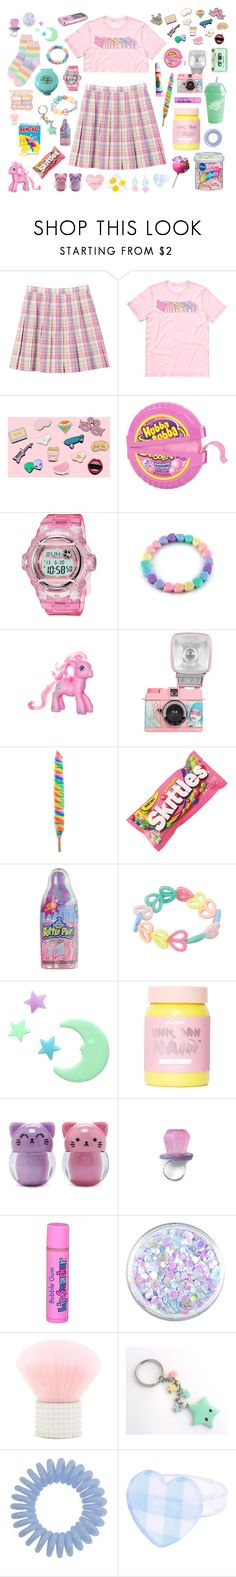 """""""Rainbows and lollipops"""" by pastelprincess152 ❤ liked on Polyvore featuring Casio, My Little Pony, Hello Kitty, Lime Crime, Forever 21, SkinCare and Hard Candy"""